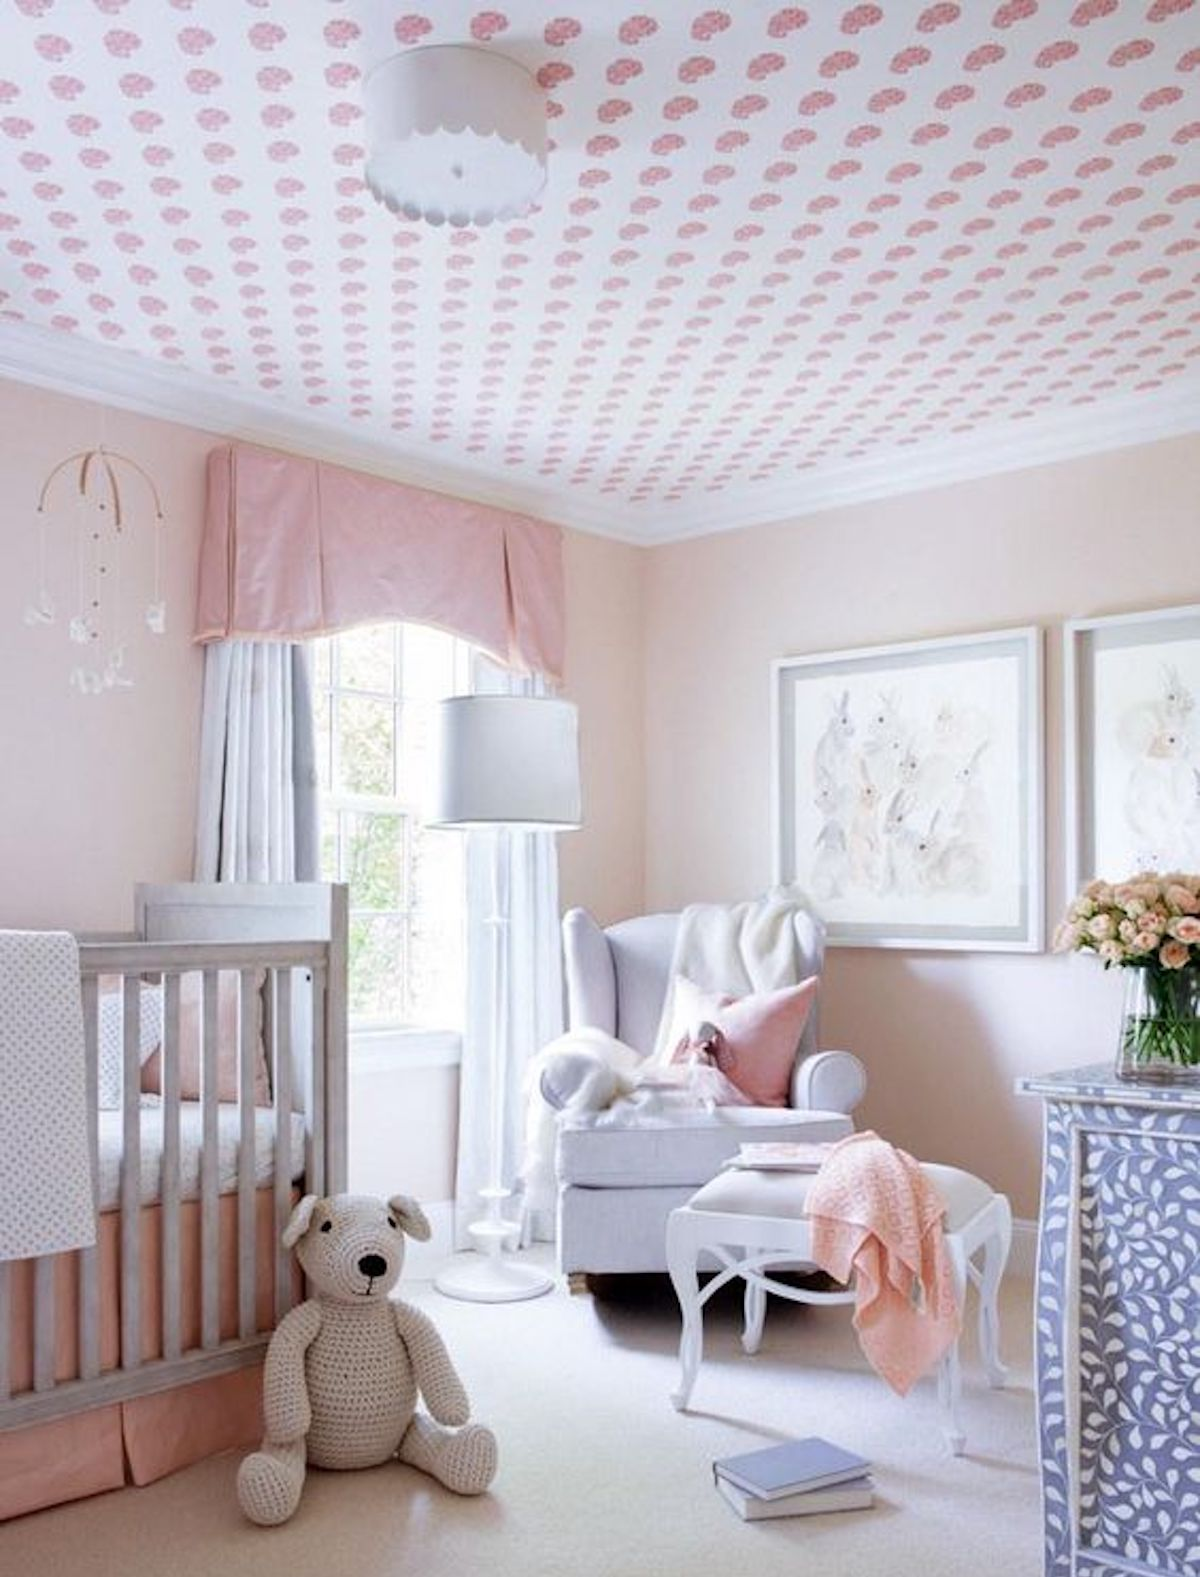 Wallpaper on ceiling in nursery